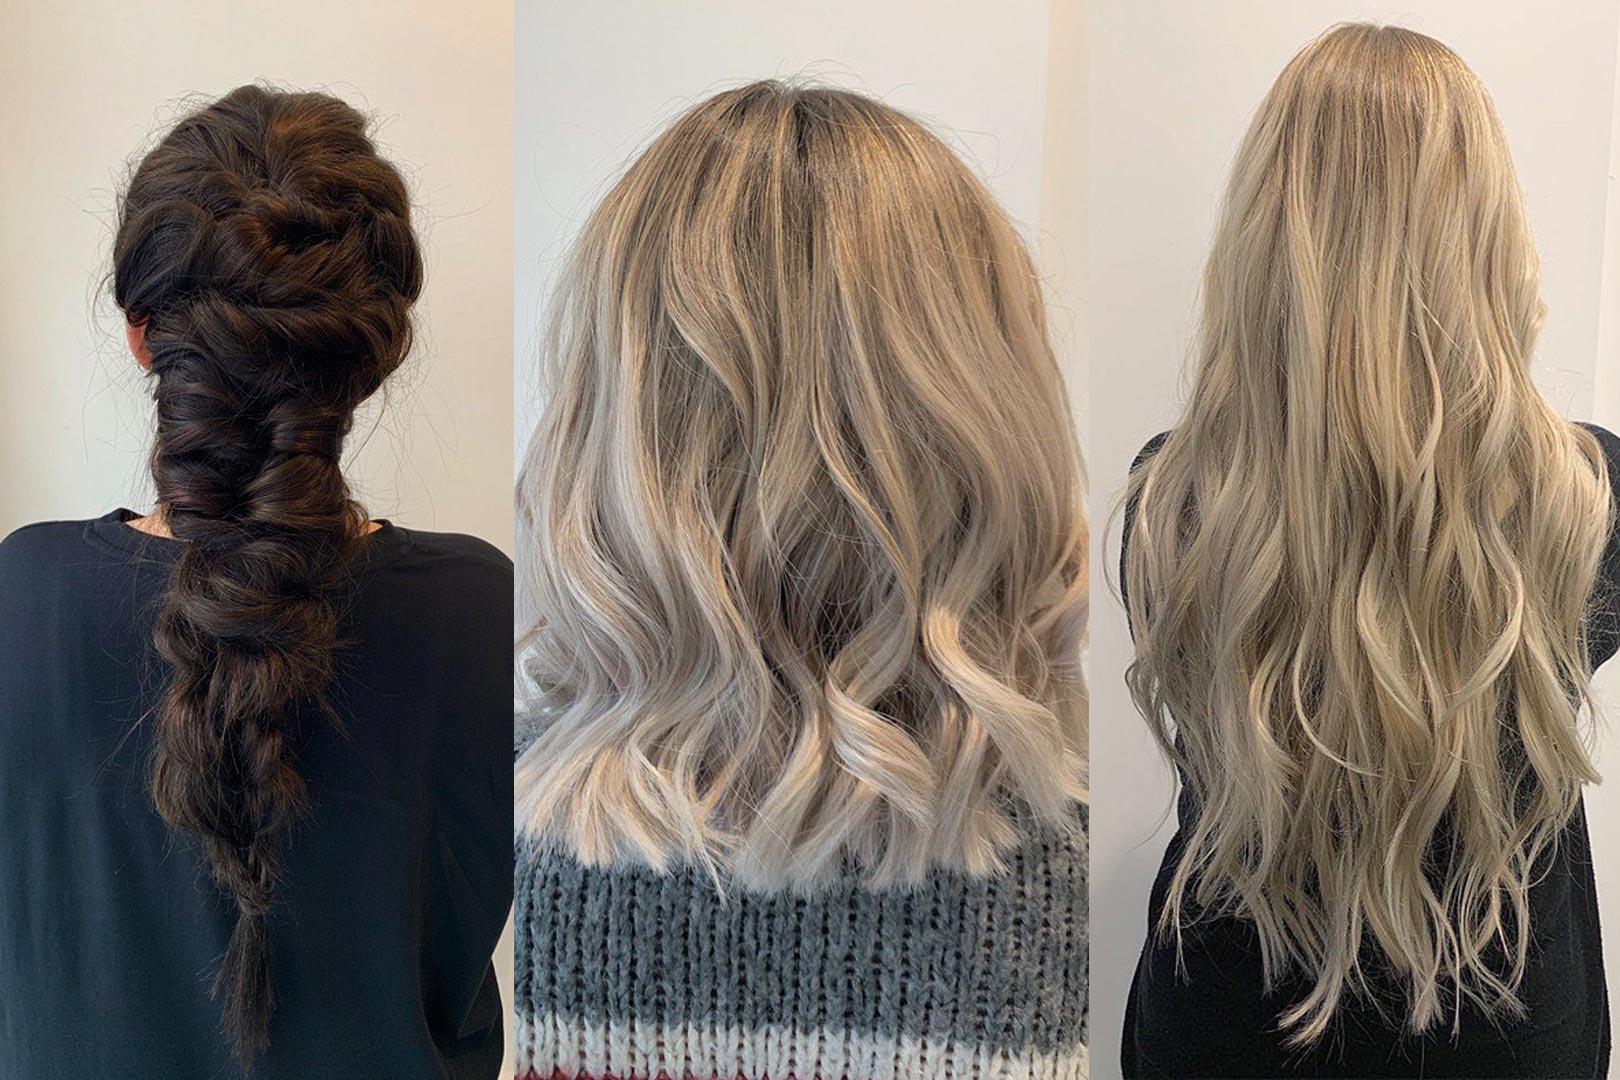 Creative Hair Stylist Long Locks by Millie